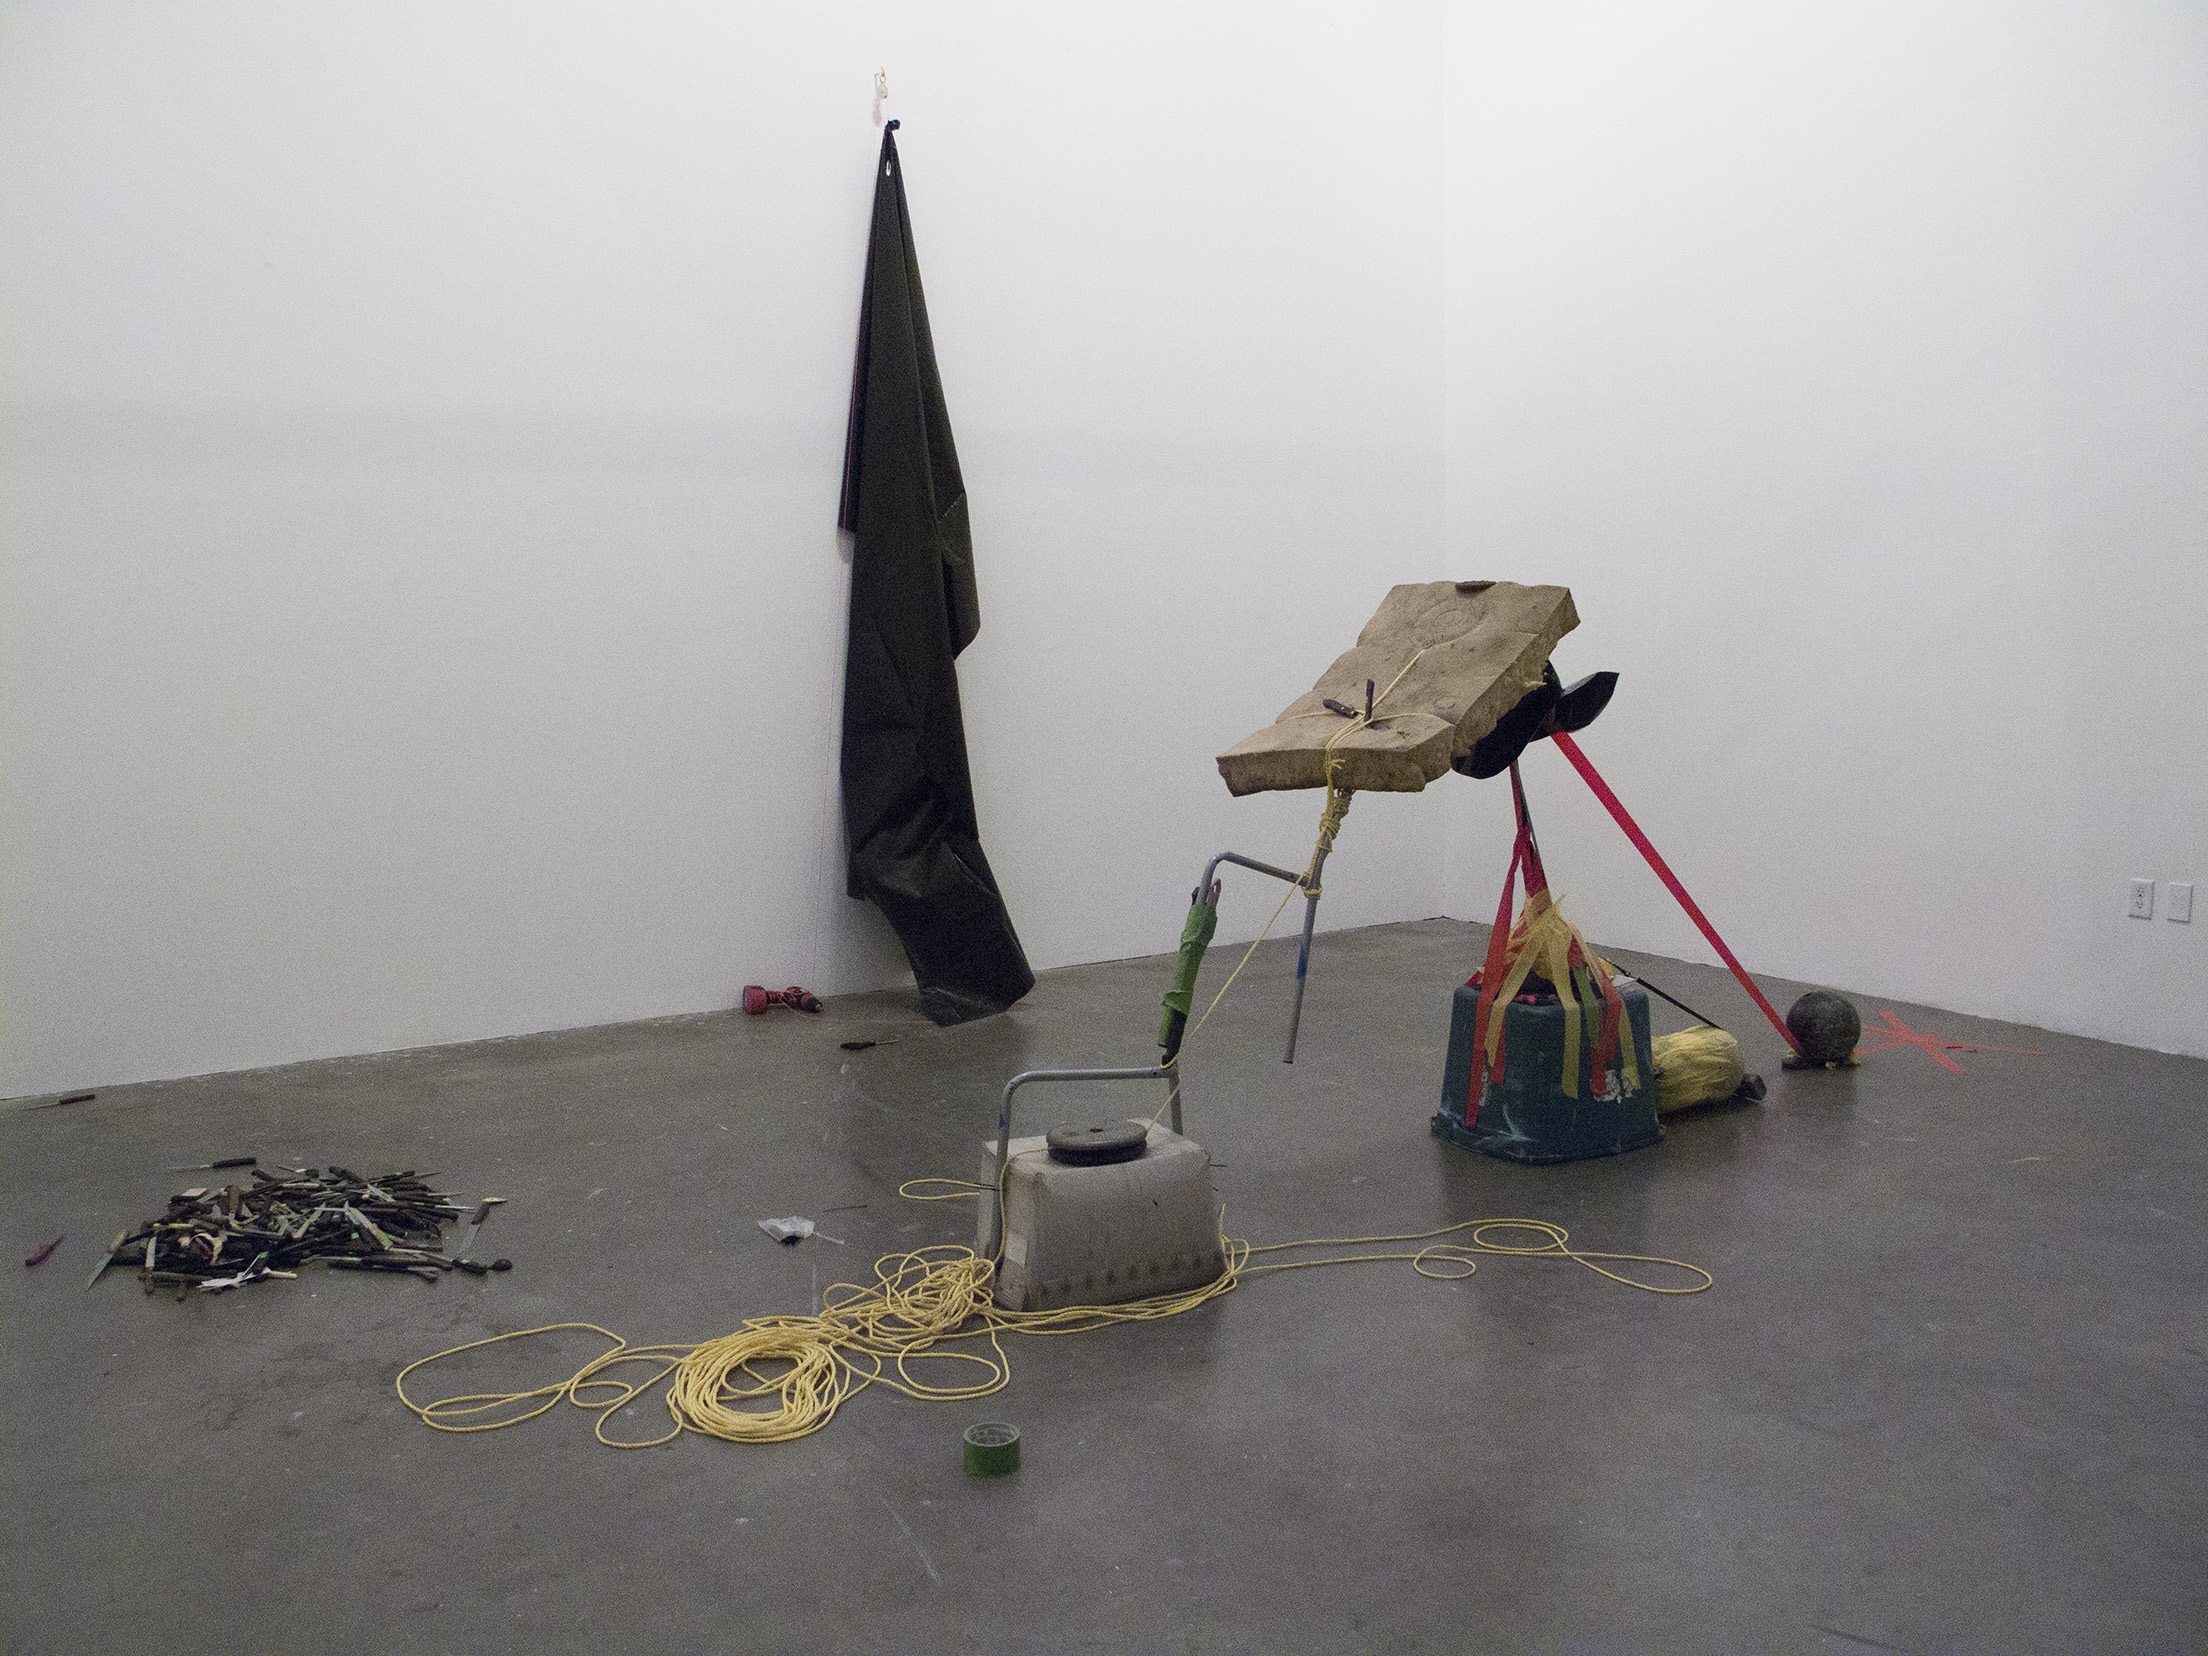 Two Teams Of Five Members Each, All Of Whom Are Blindfolded, Work To Build An Arch With Whatever Materials Are On Hand,  2012, Knives, nylon rope, duct tape, 2 barbell weights, 3 bowling balls, cordless drill, plastic curtain, couch cushion, zip ties   (click here for a larger image)